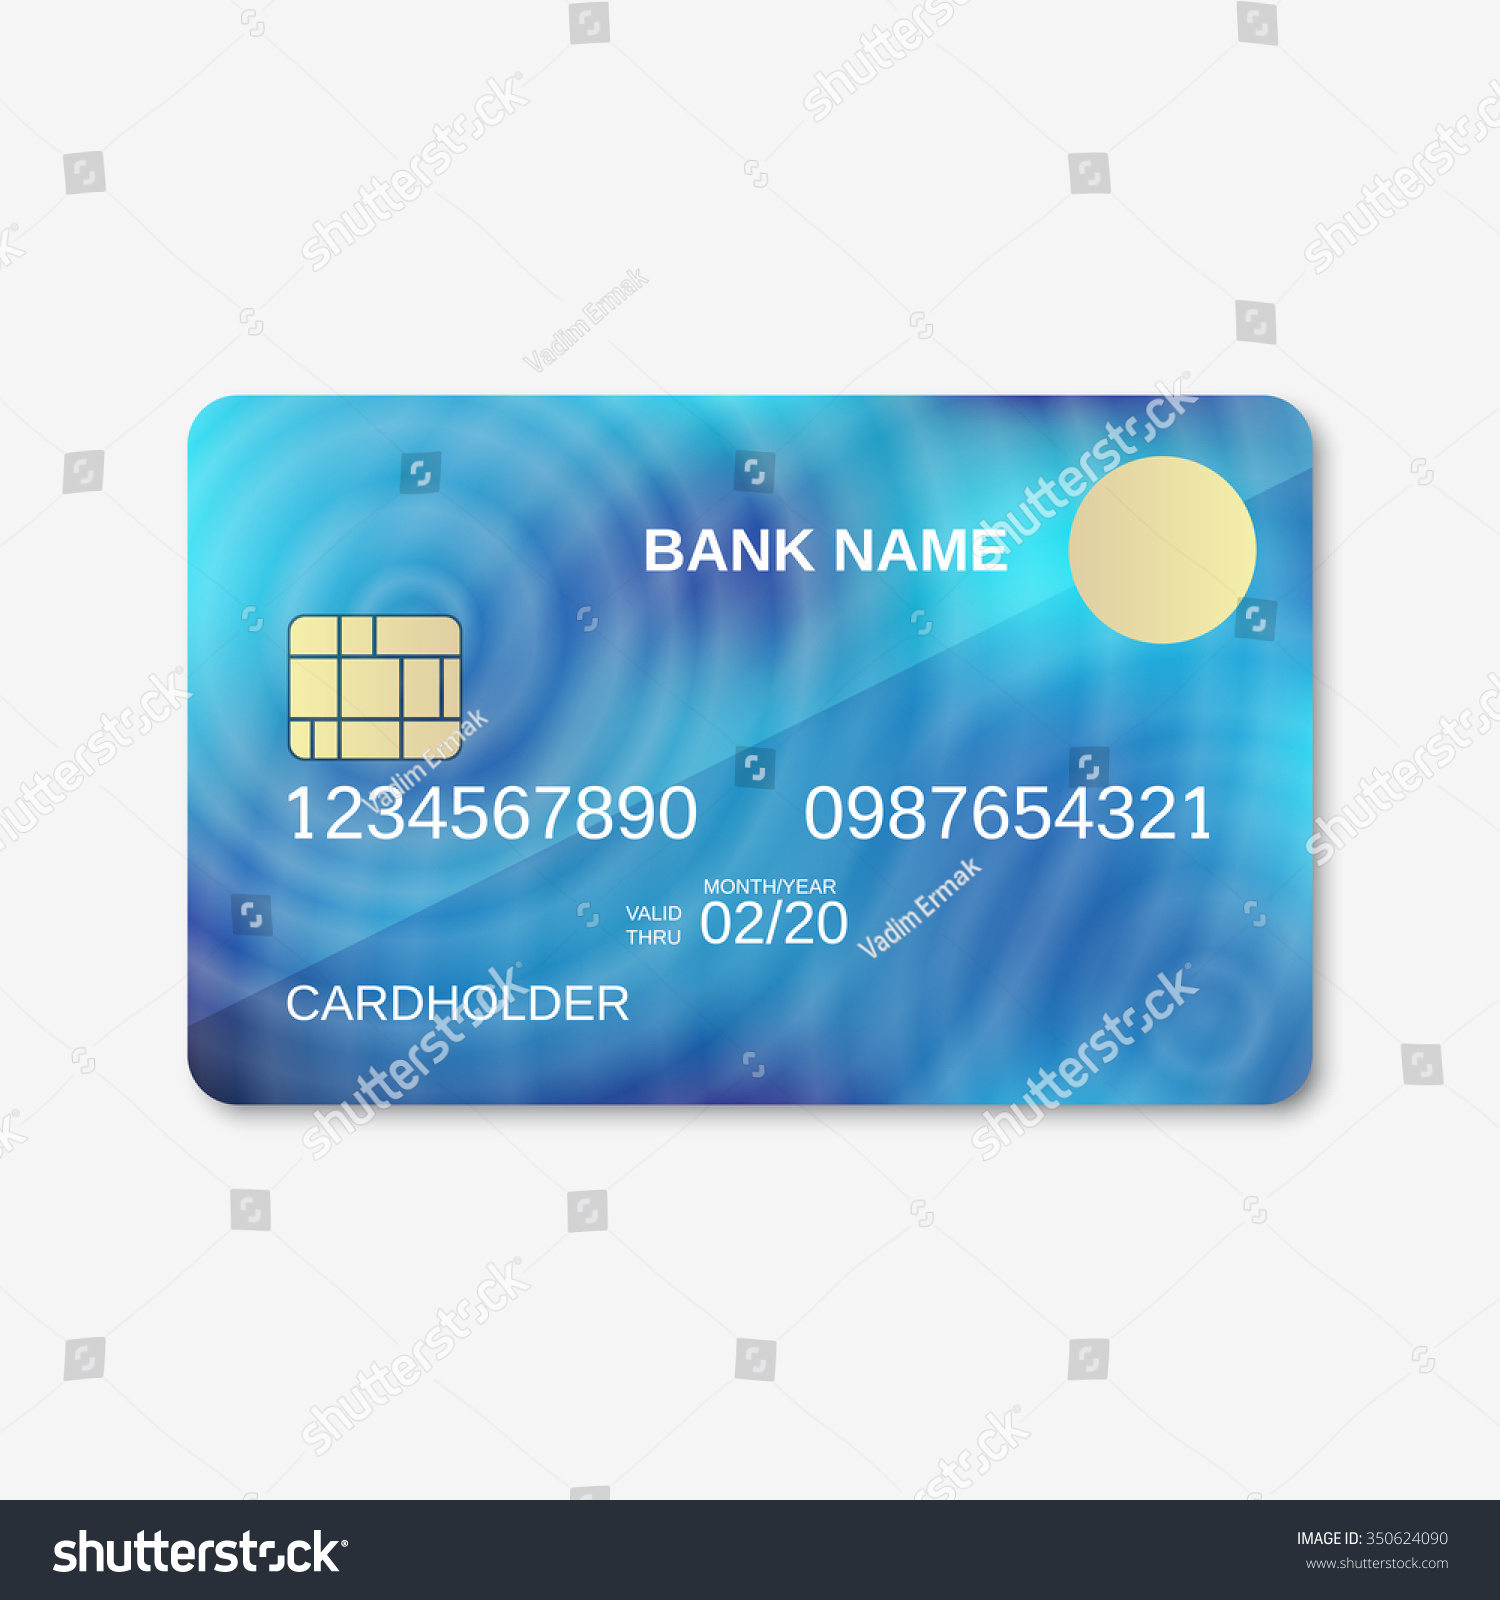 bank card credit card discount card stock vector 350624090 shutterstock. Black Bedroom Furniture Sets. Home Design Ideas